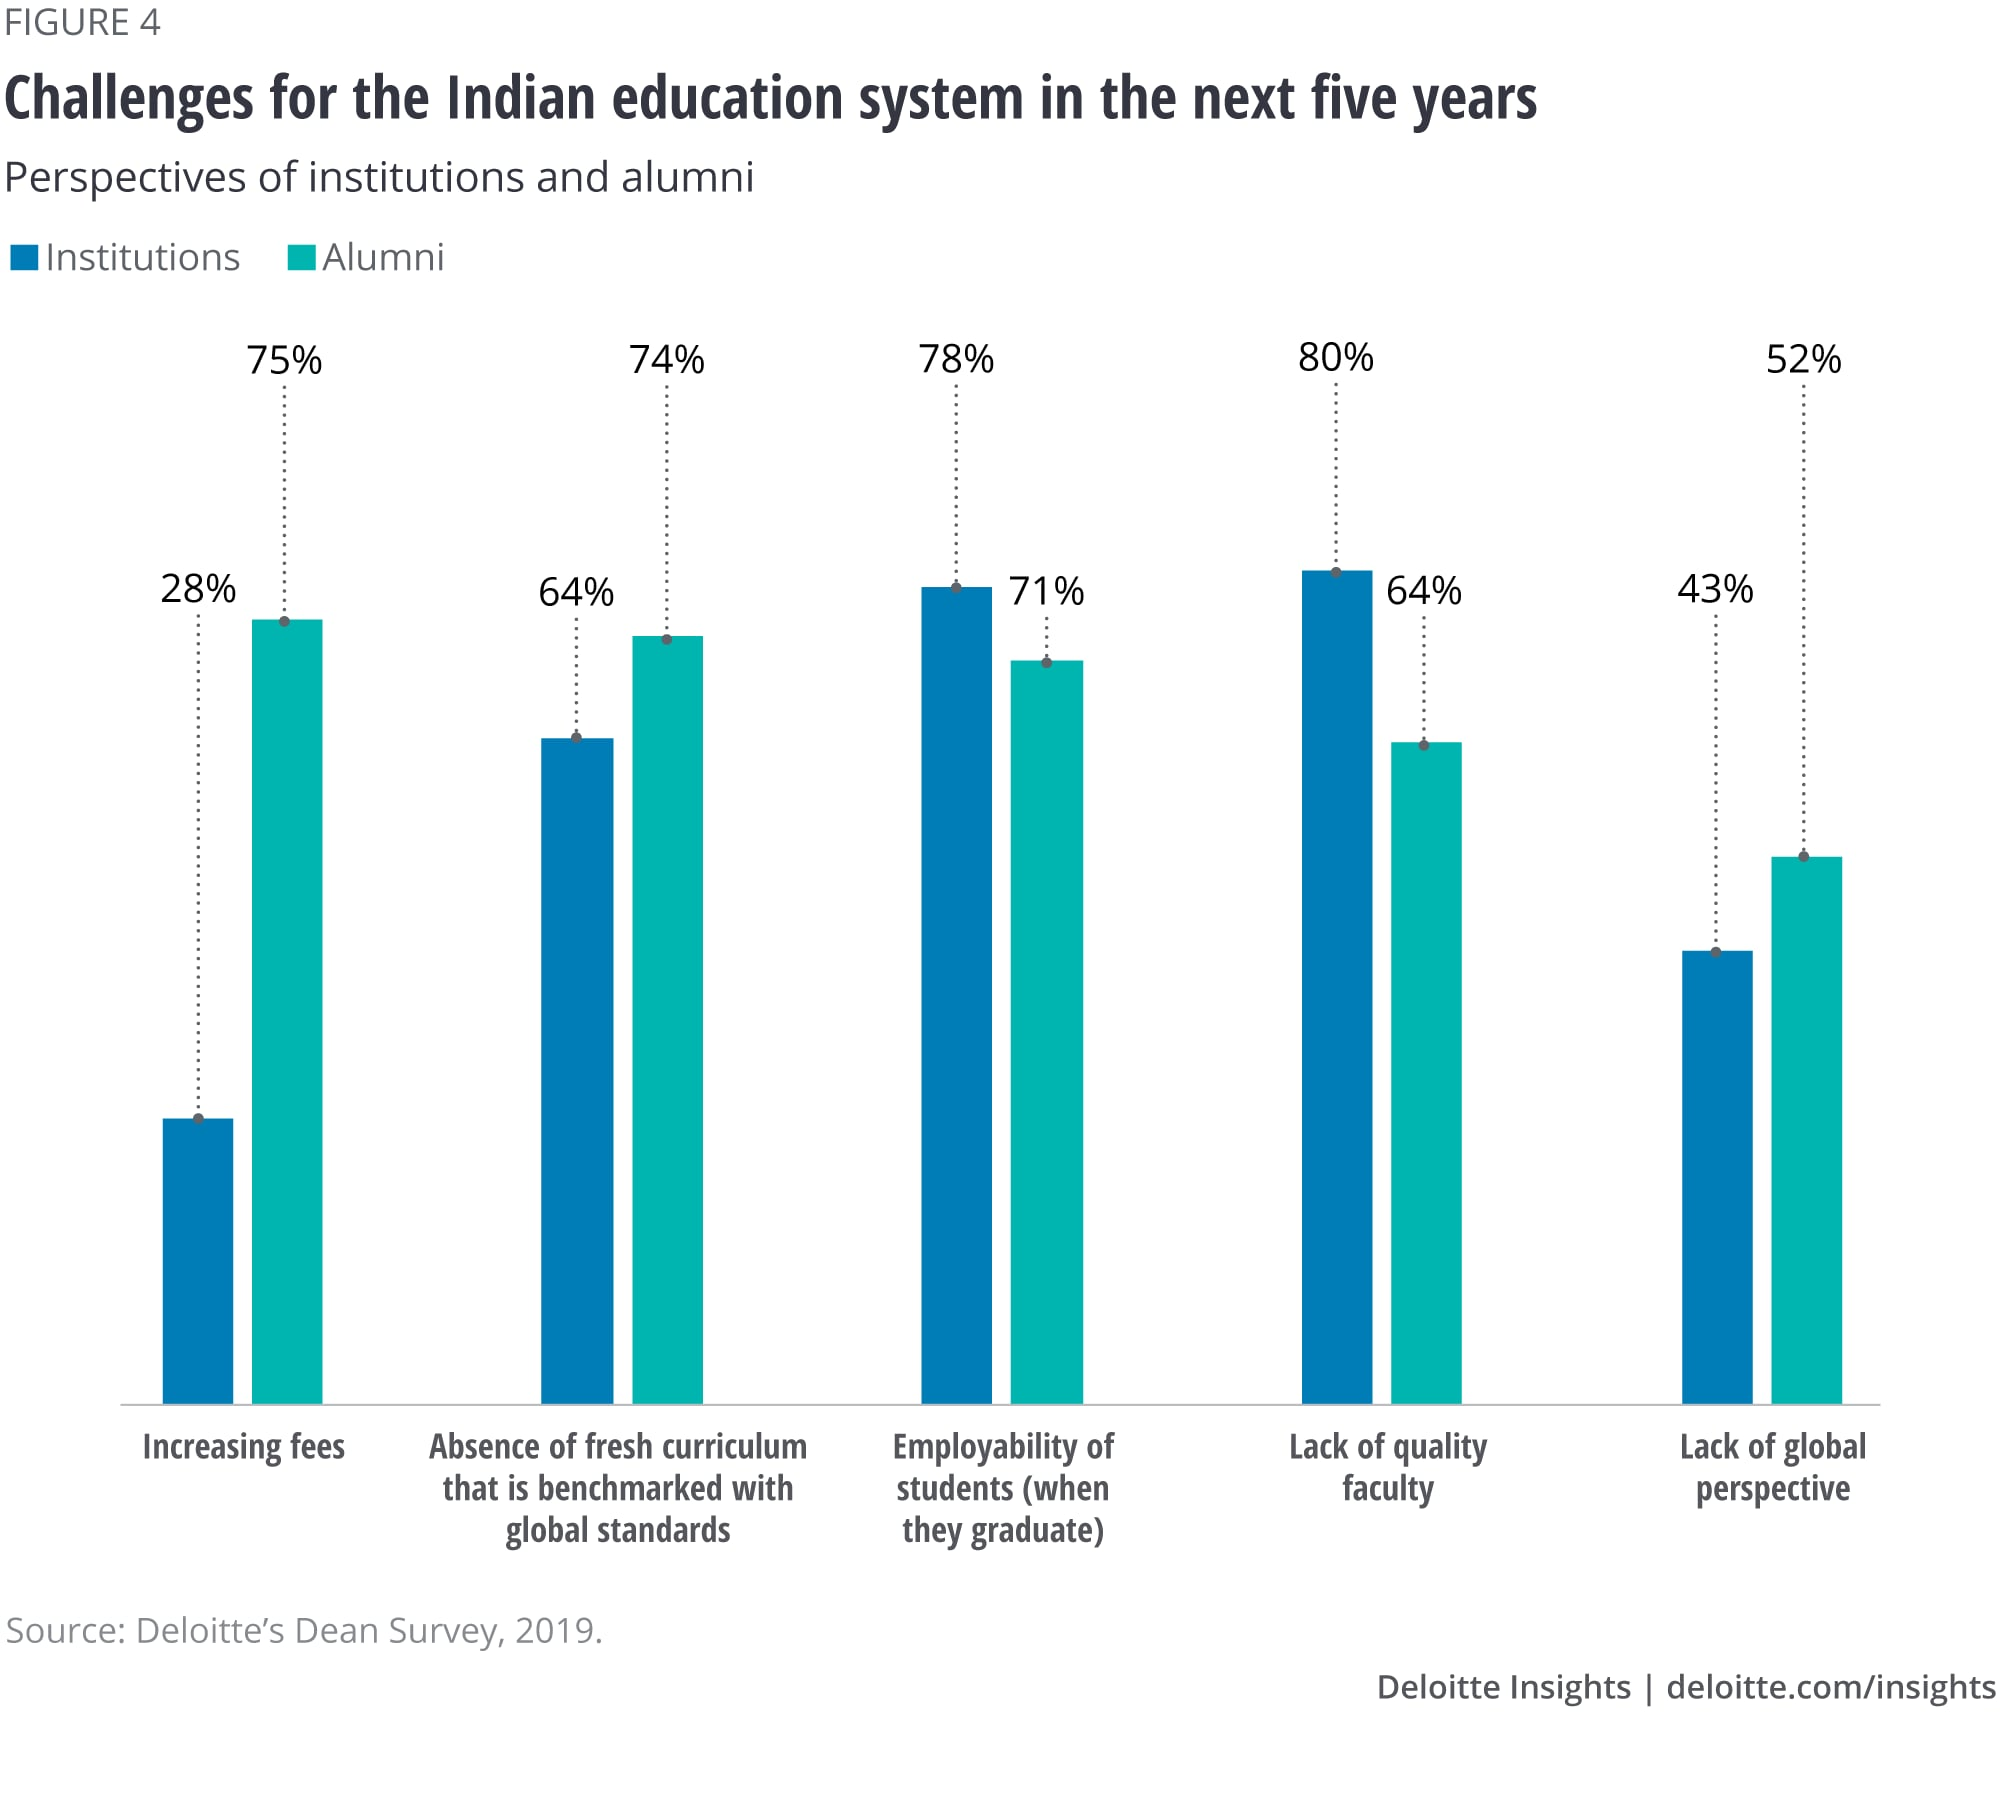 Challenges for the Indian education system in the next five years